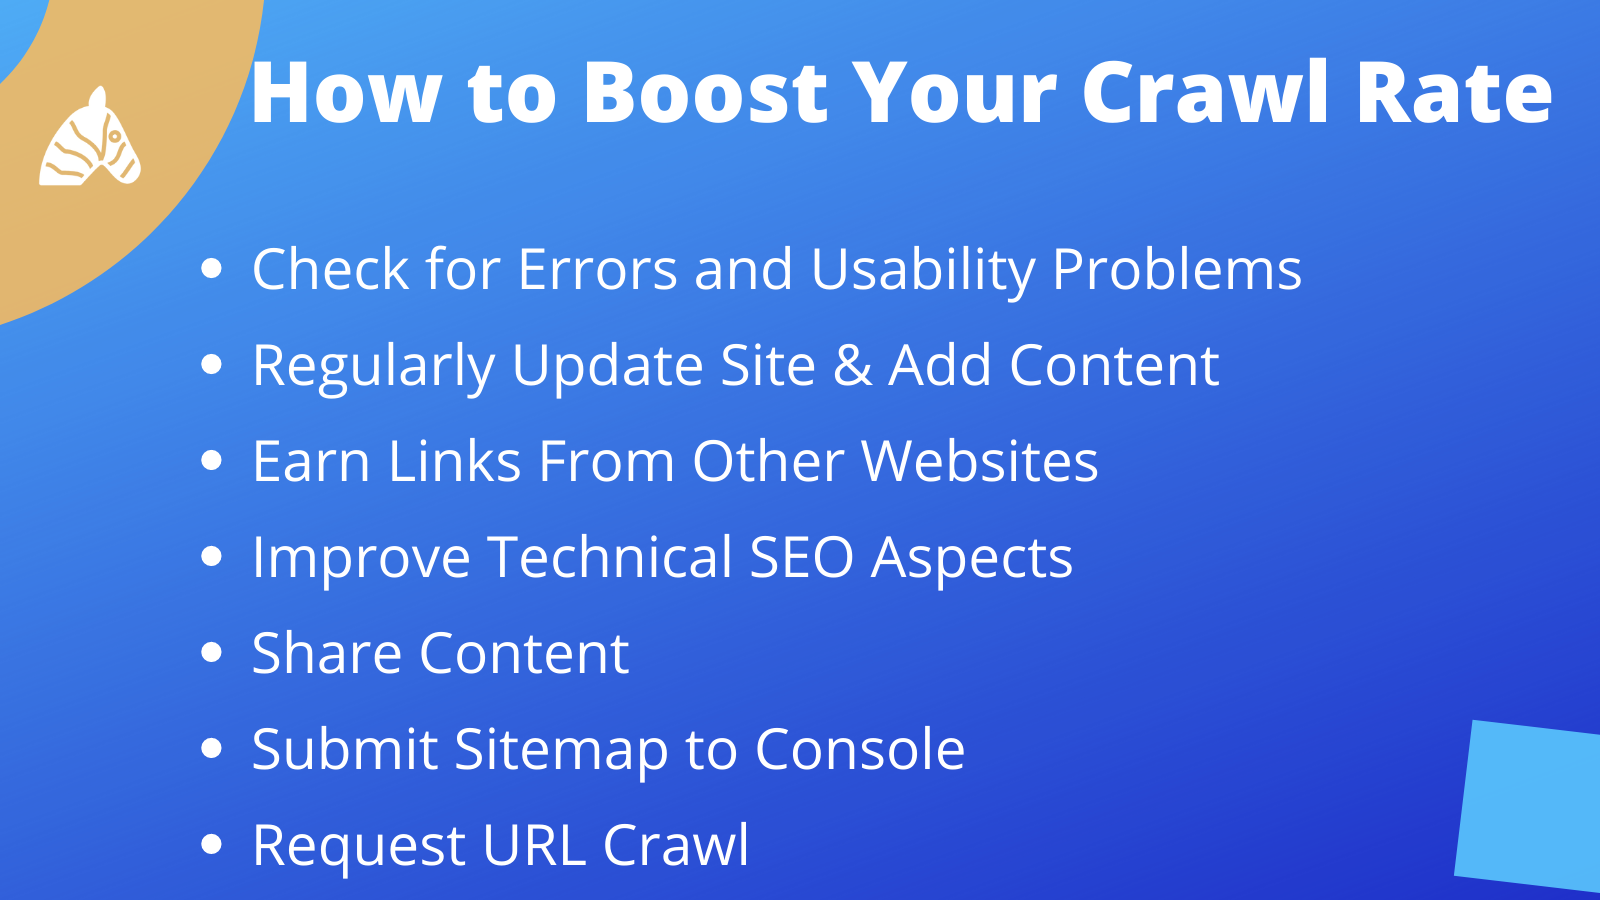 Tips on how to boost your site crawl rate